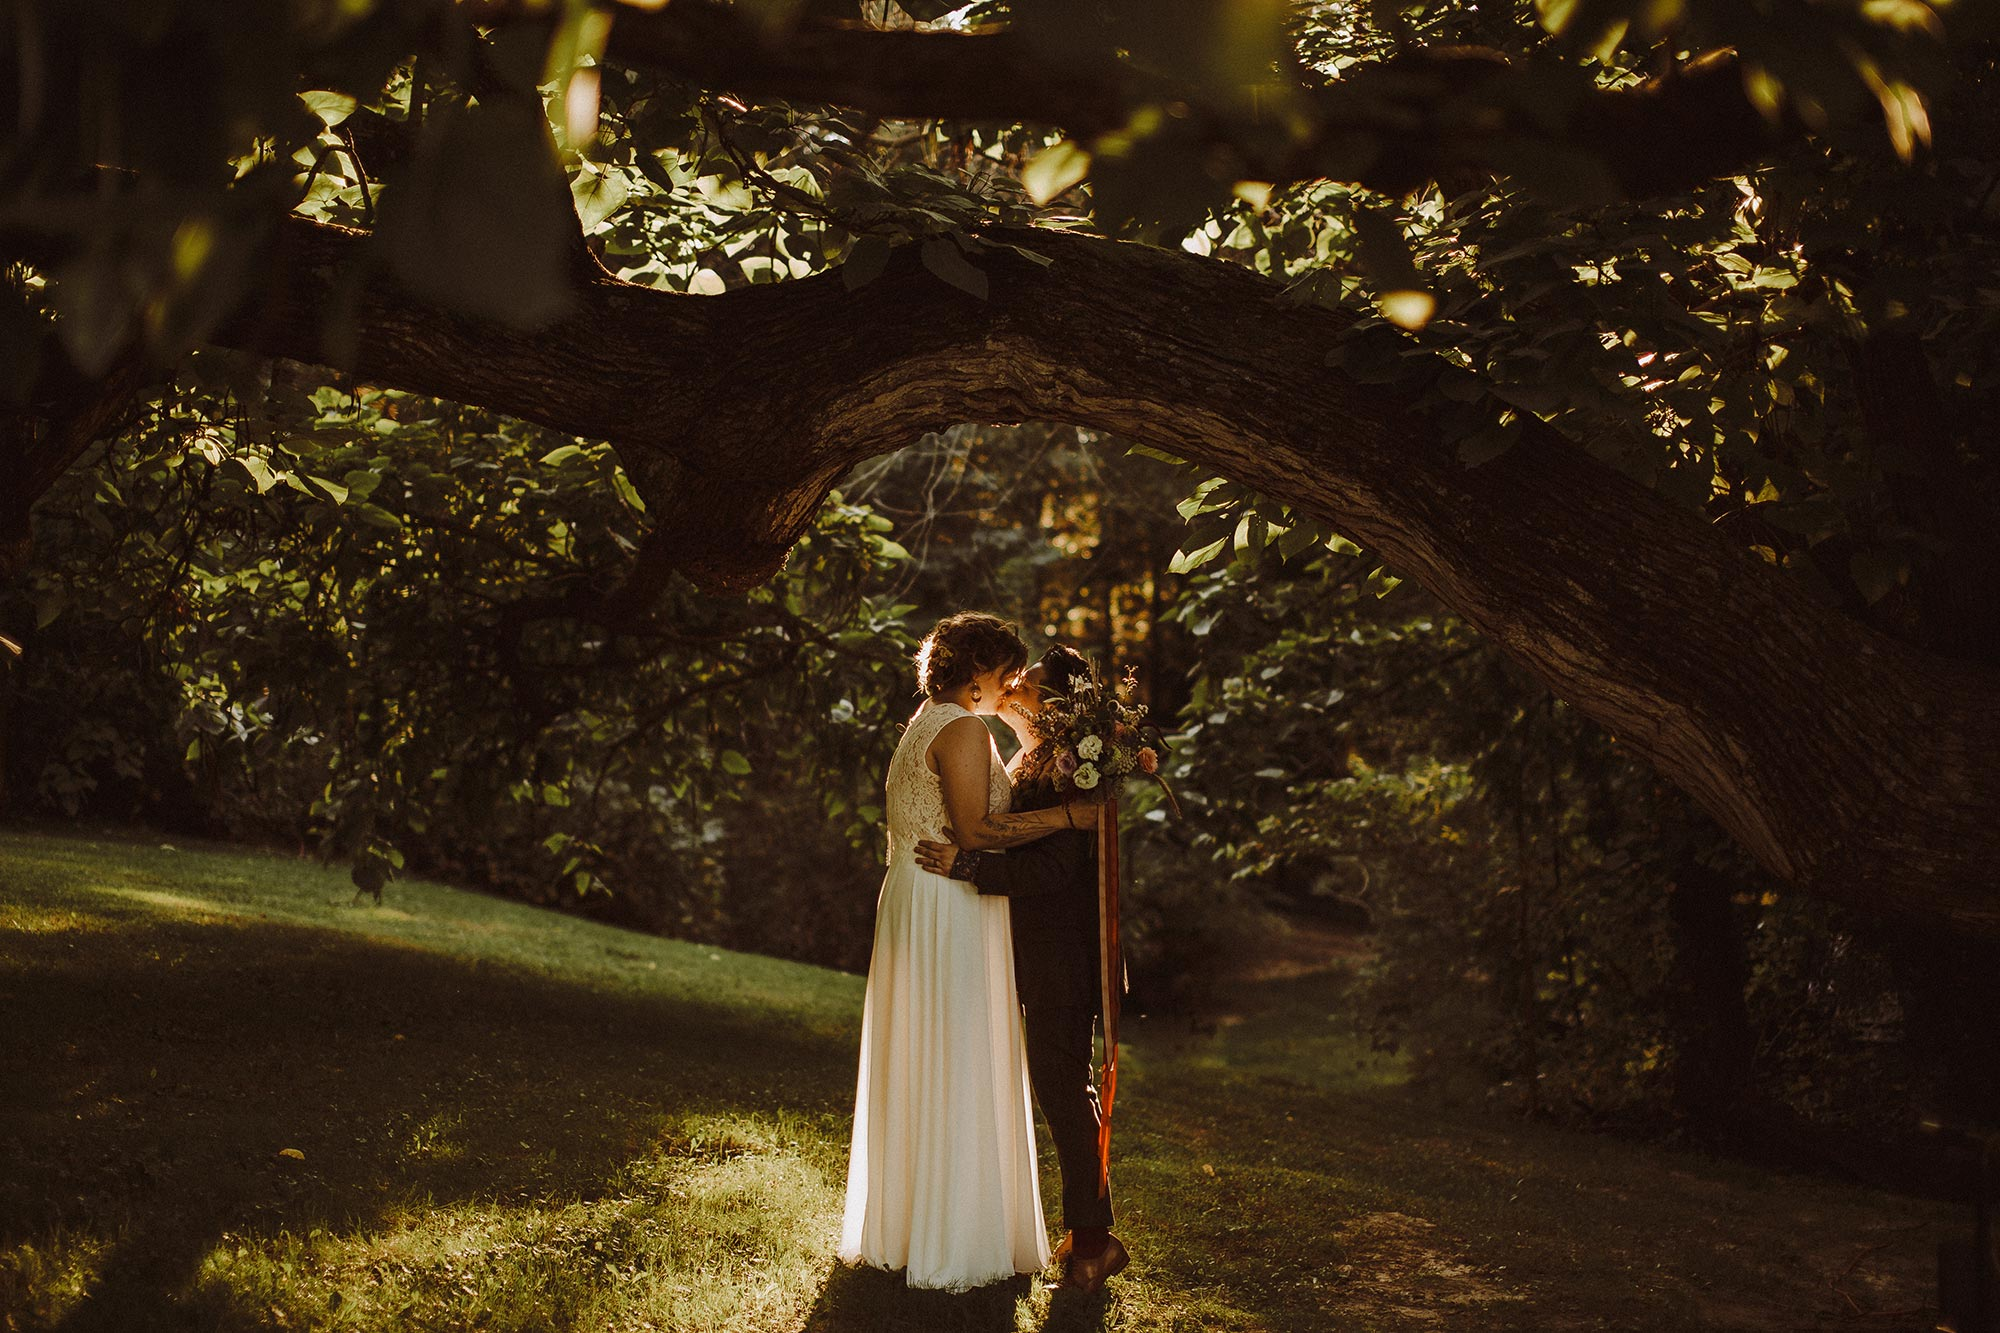 DIY summer camp wedding spring green wisconsin heidi uhlman photography alex and frances kiss under tree